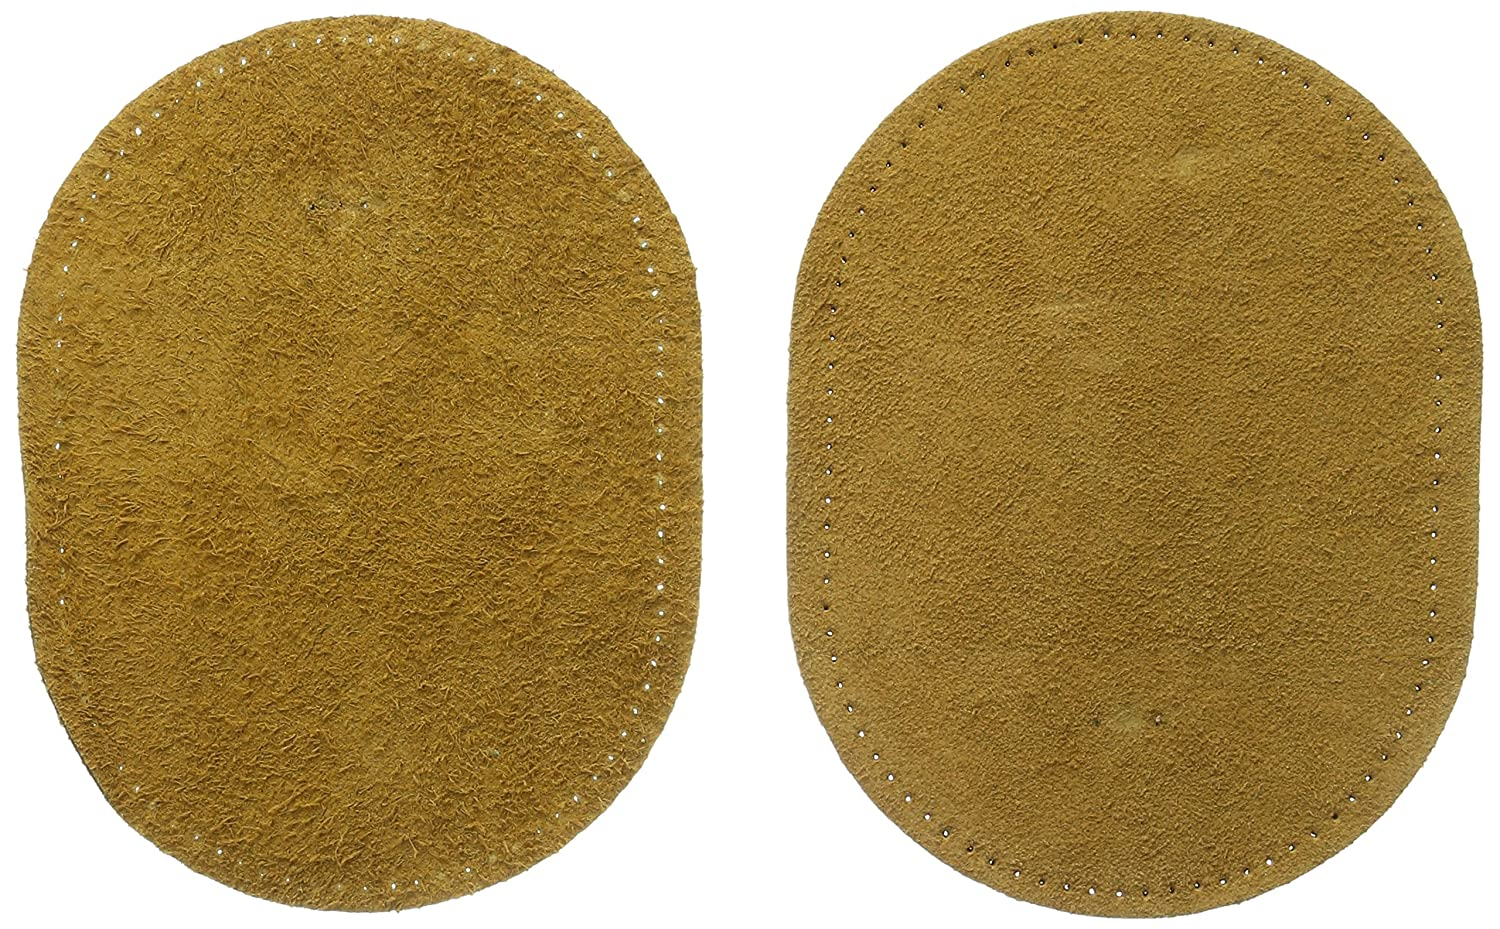 Dritz Suede Cowhide Elbow Patches - Beige 4-3/4 by 6-1/4 inches - 2 Count by Dritz   B0018N3YAQ